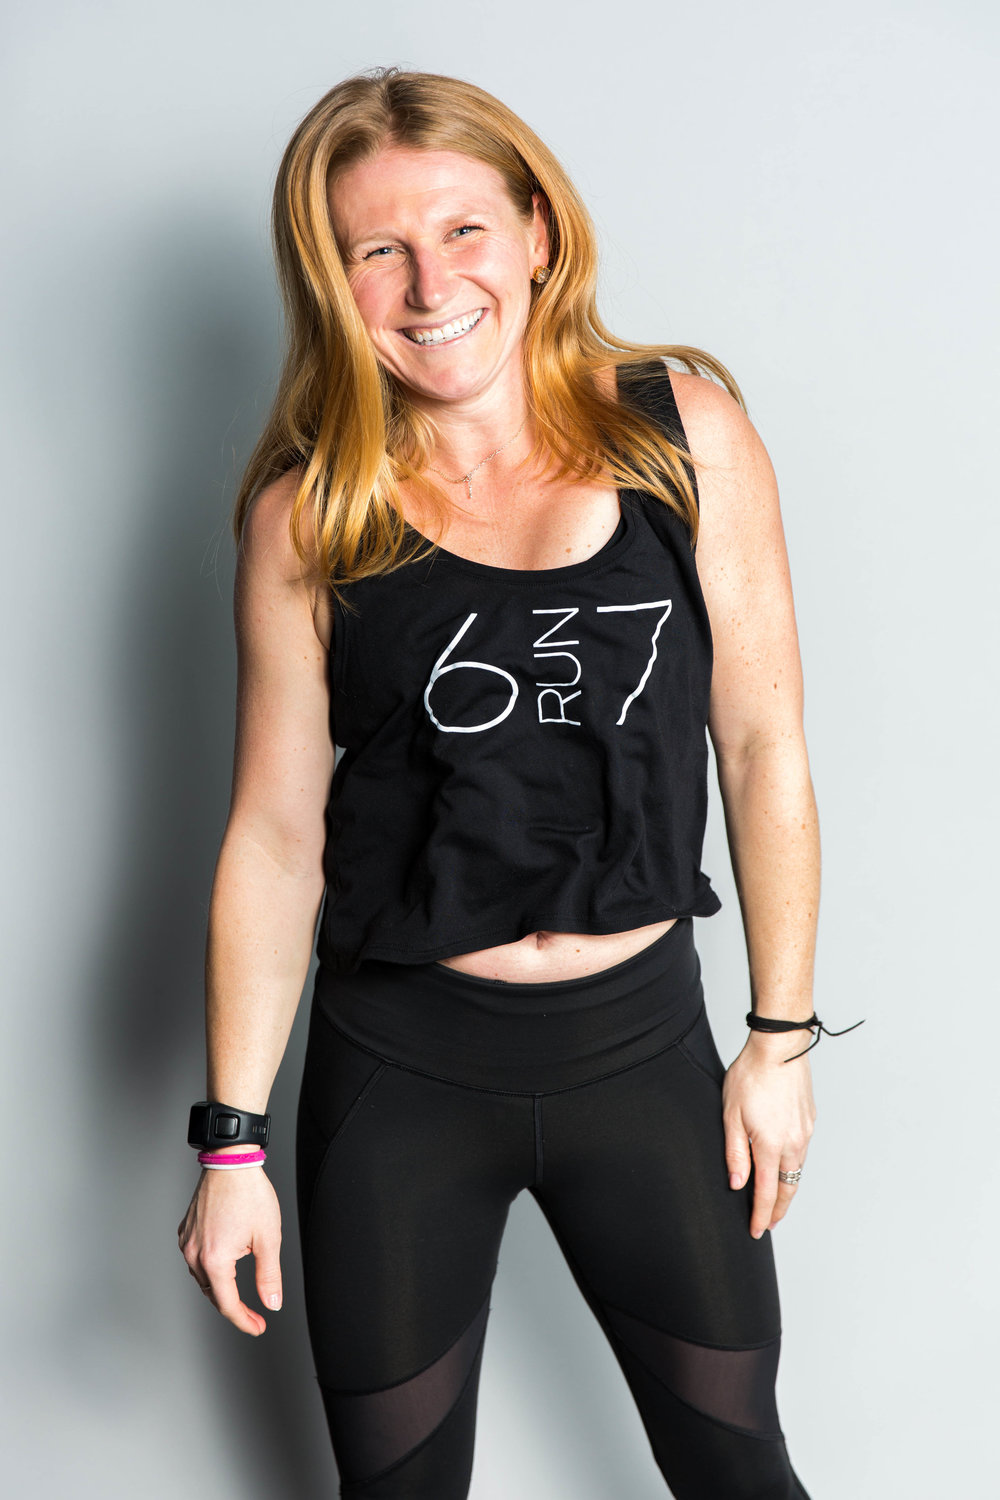 CARA - Instructor CARA FOUND HER LOVE FOR RUNNING POST COLLEGE. IN COLLEGE SHE PLAYED TENNIS AT SAINT MICHAEL'S IN VERMONT, AND AFTER SHE GRADUATED SHE HAD THE OPPORUNITY TO RUN THE BOSTON MARATHON AND SHE WAS FOREVER HOOKED. SHE WENT ON TO RUN 15 MARATHONS AND COUNTLESS OTHER RACES. SHE IS FULL OF SMILES, MOTIVIATION, AND LOTS OF MILES. SHE'LL BE RIGHT THERE WITH YOU SWEATING THROUGH EACH WORKOUT.